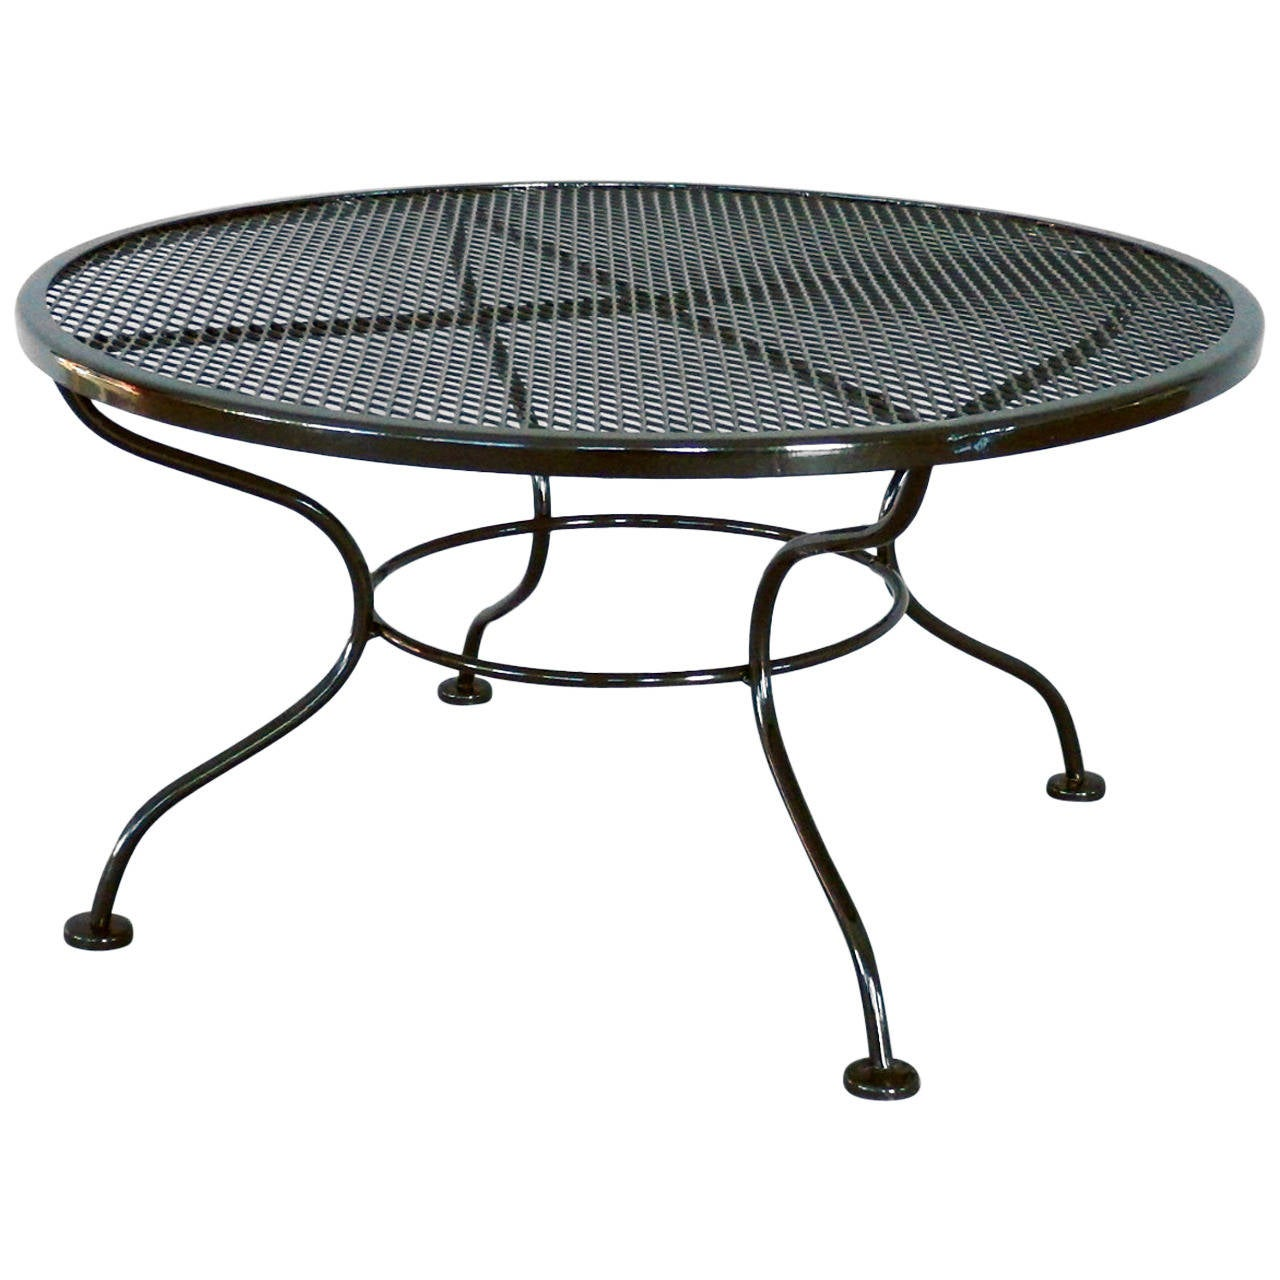 Iron Coffee Tables Woodard Wrought Iron Coffee Or Occasional Table For Sale At 1stdibs